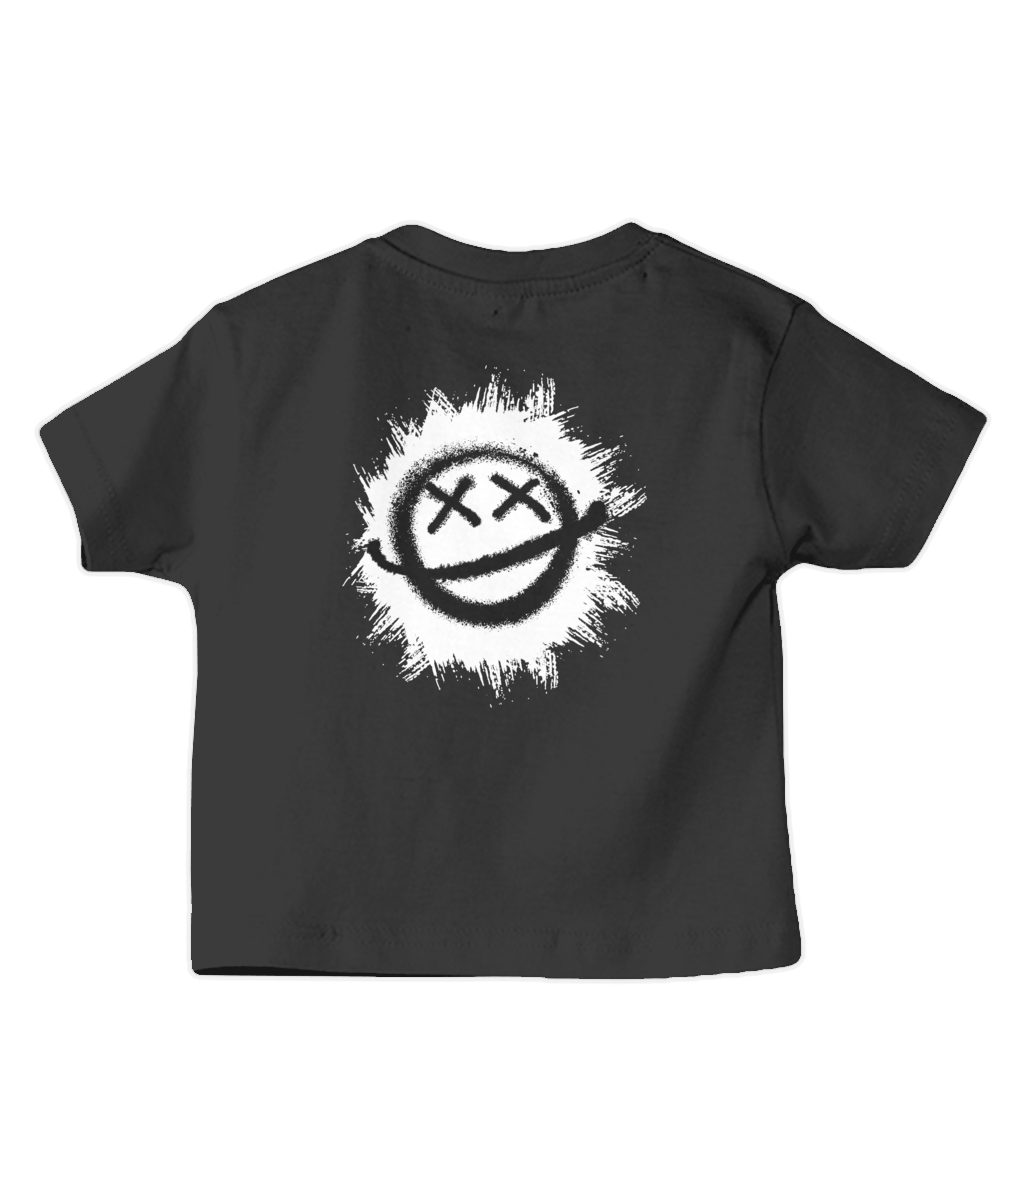 Smiley Spray Baby T Shirt